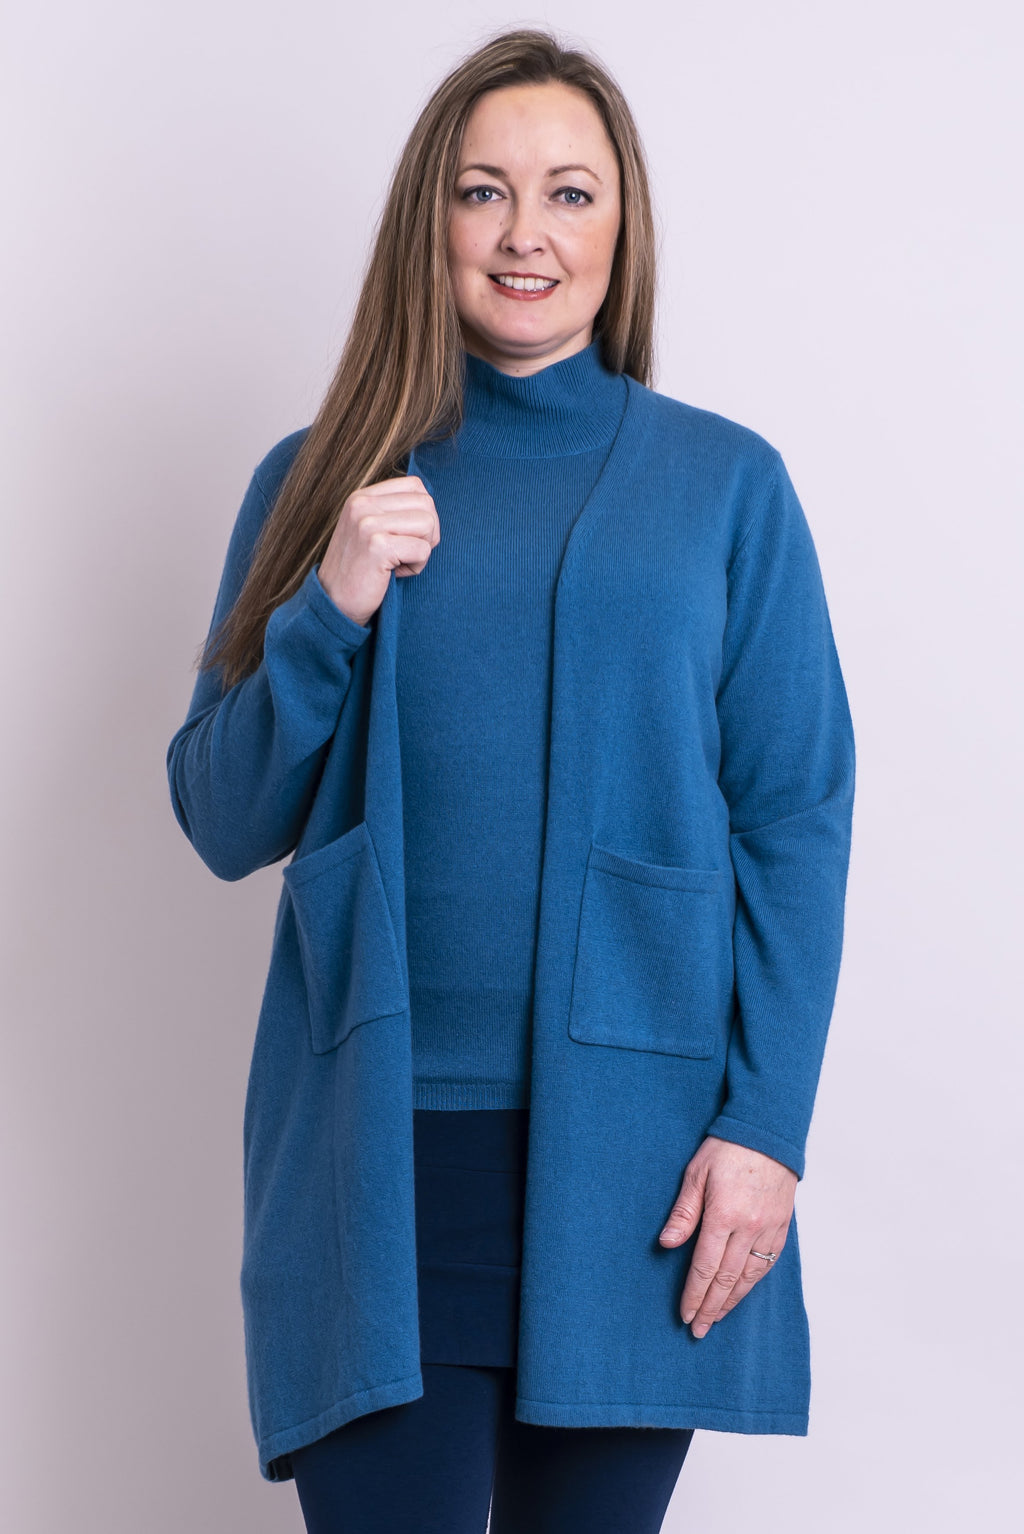 Slick Sweater, Blue Topaz, Cashmere - Blue Sky Clothing Co